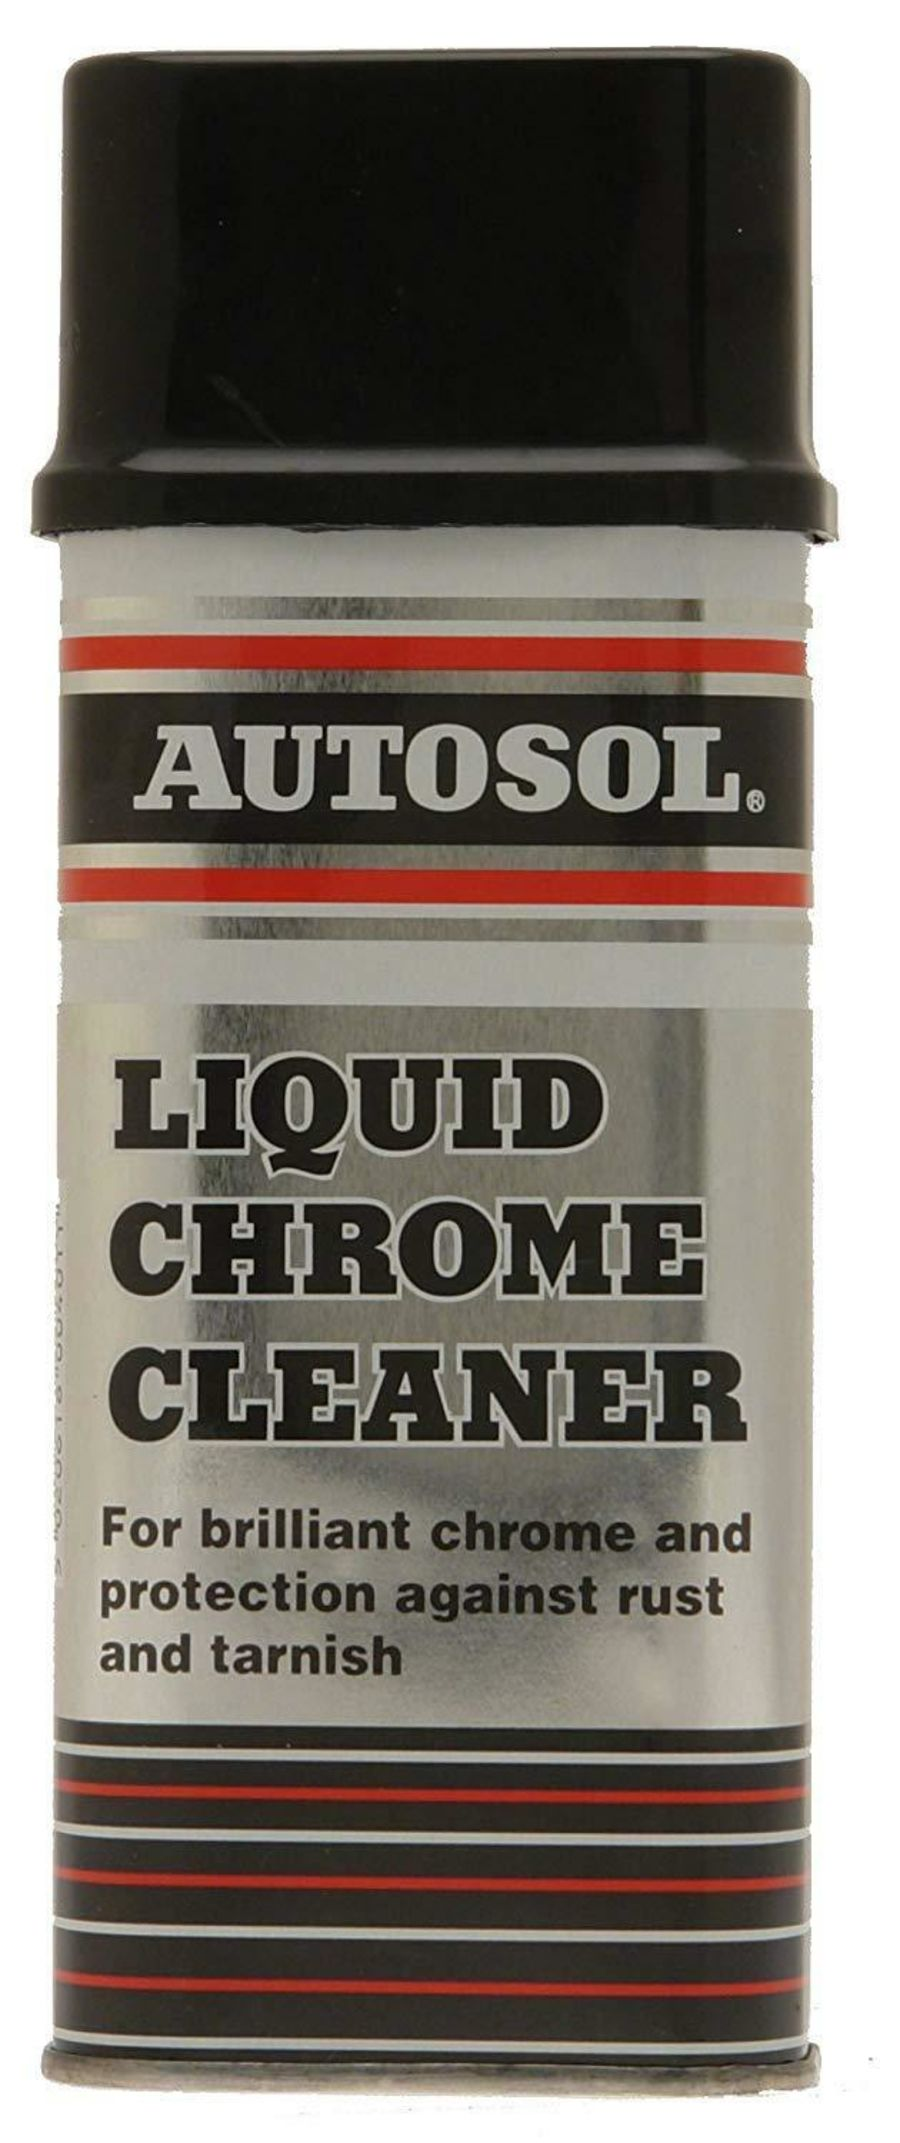 Autosol 250ml Liquid Chrome Cleaner